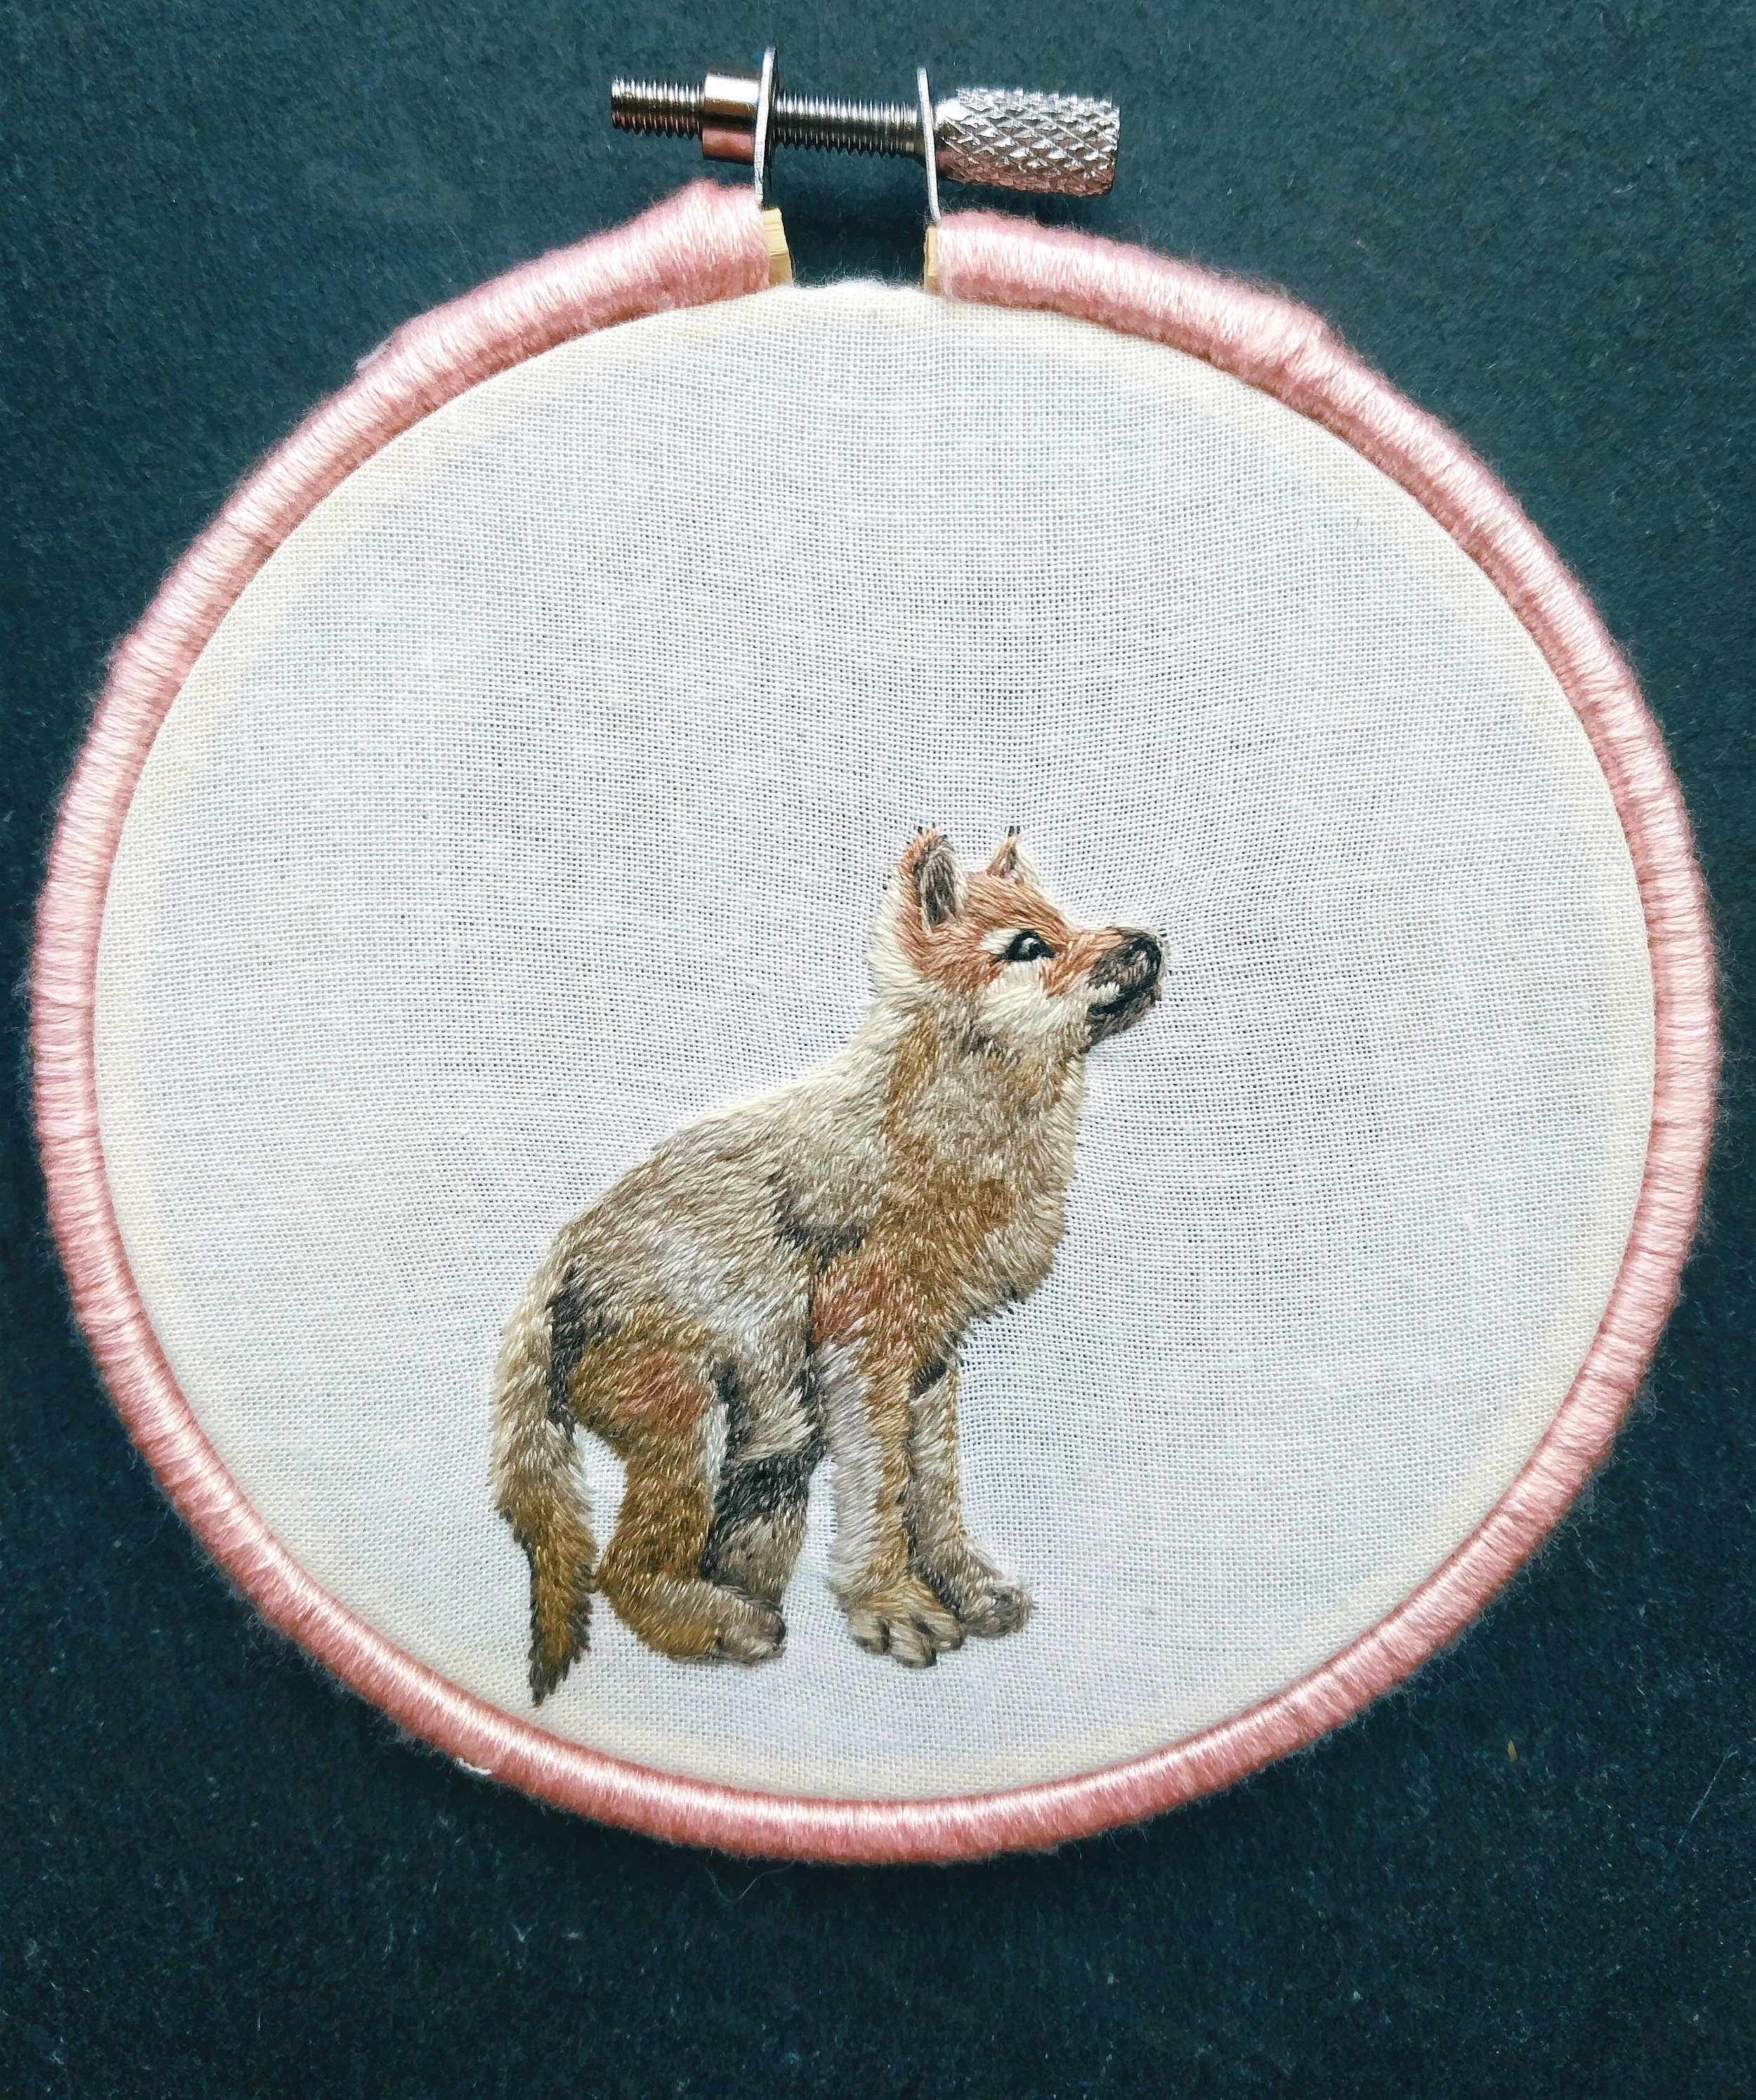 Wolf Pup- a practice project for a baby woodland animal series I'm starting soon